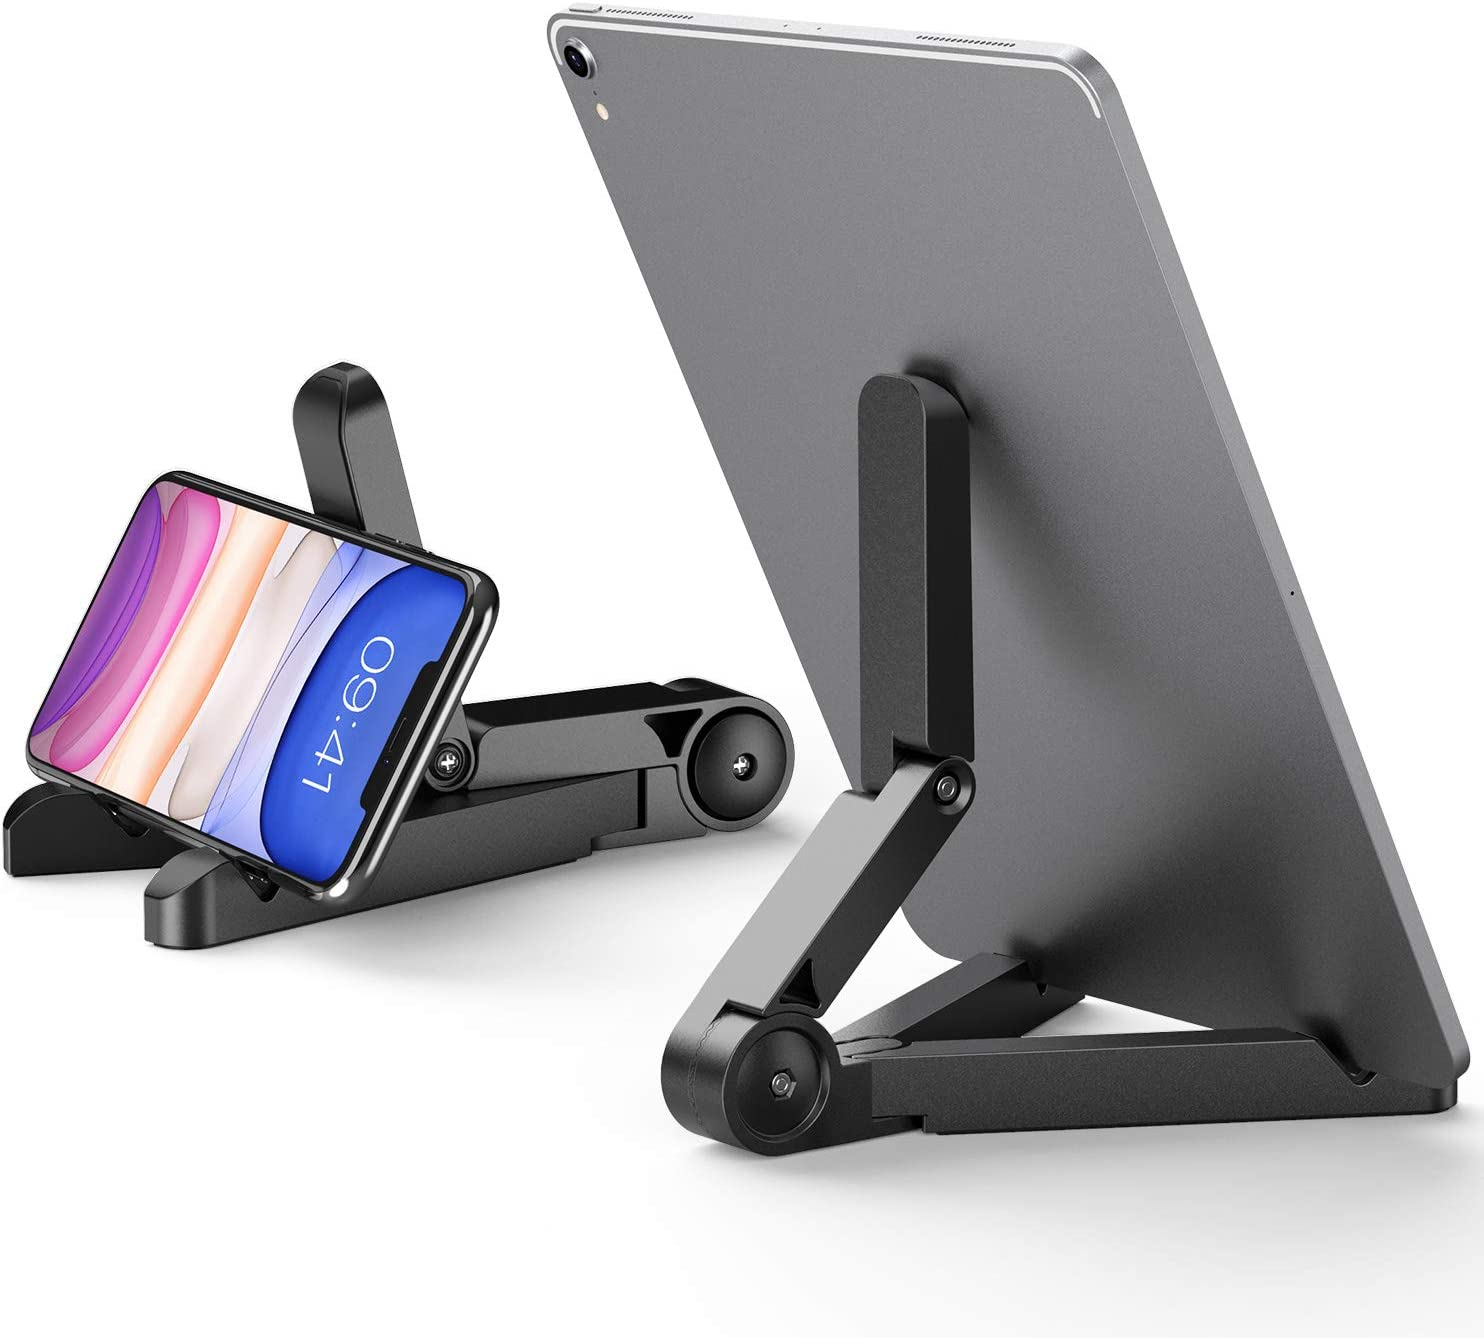 ORIbox Adjustable Stand for iPhone, iPad,Cell Phone Stand,Desktop Solid Universal Desk Stand,Compatible with All iPhone 12/11 Pro Max XS Max XR X 8 7 6S Plus SE 2020 12 mini,Samsung Galaxy,Smart Phone